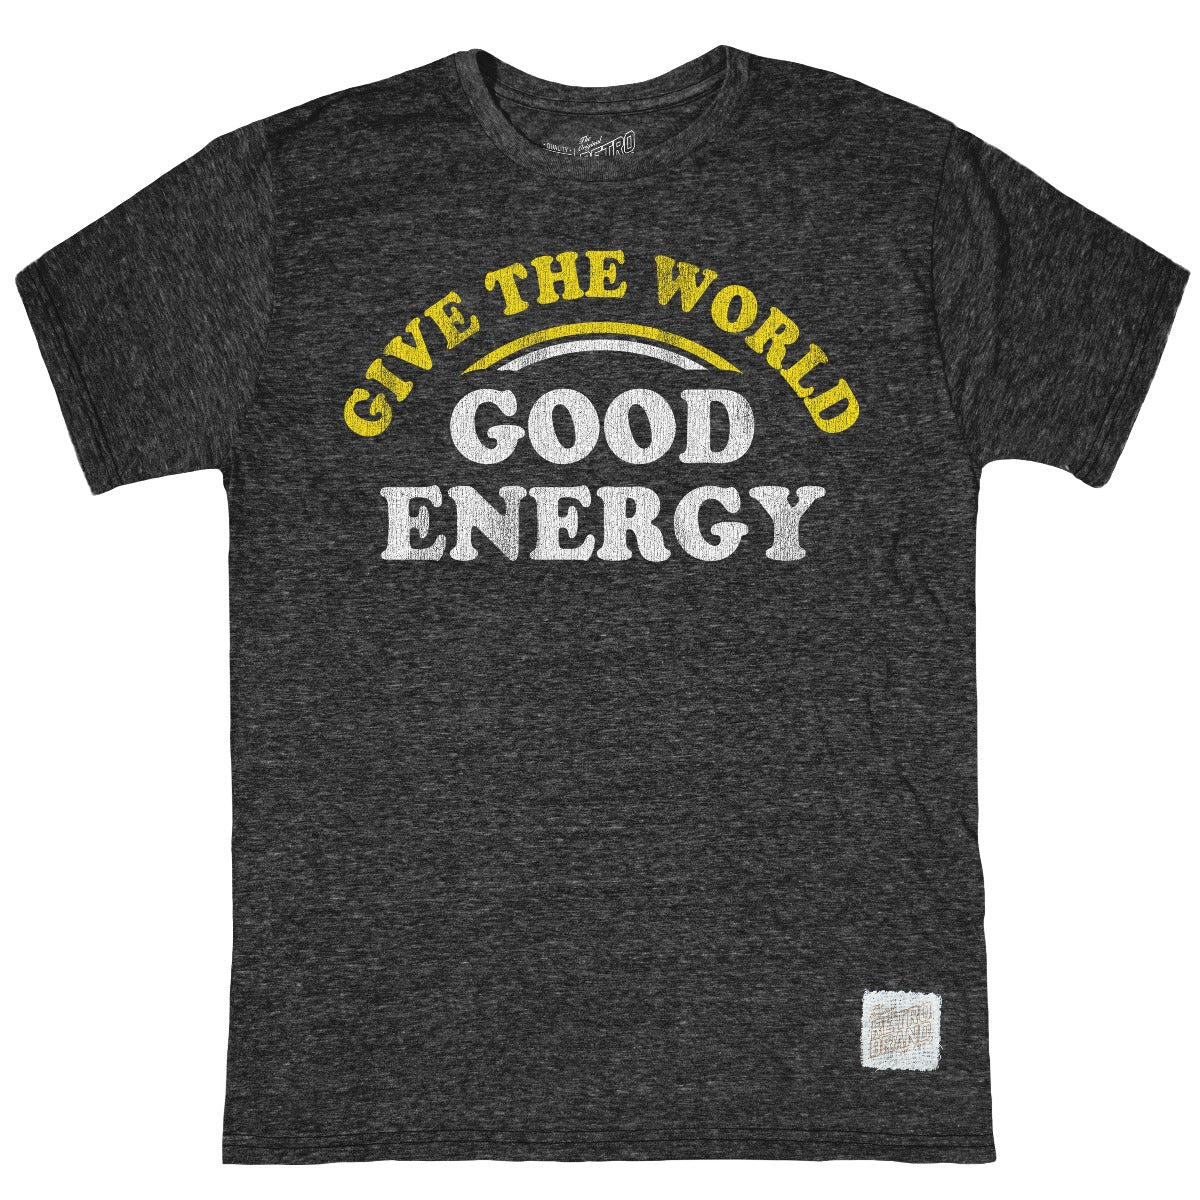 Give The World Good Energy Tri-Blend Tee